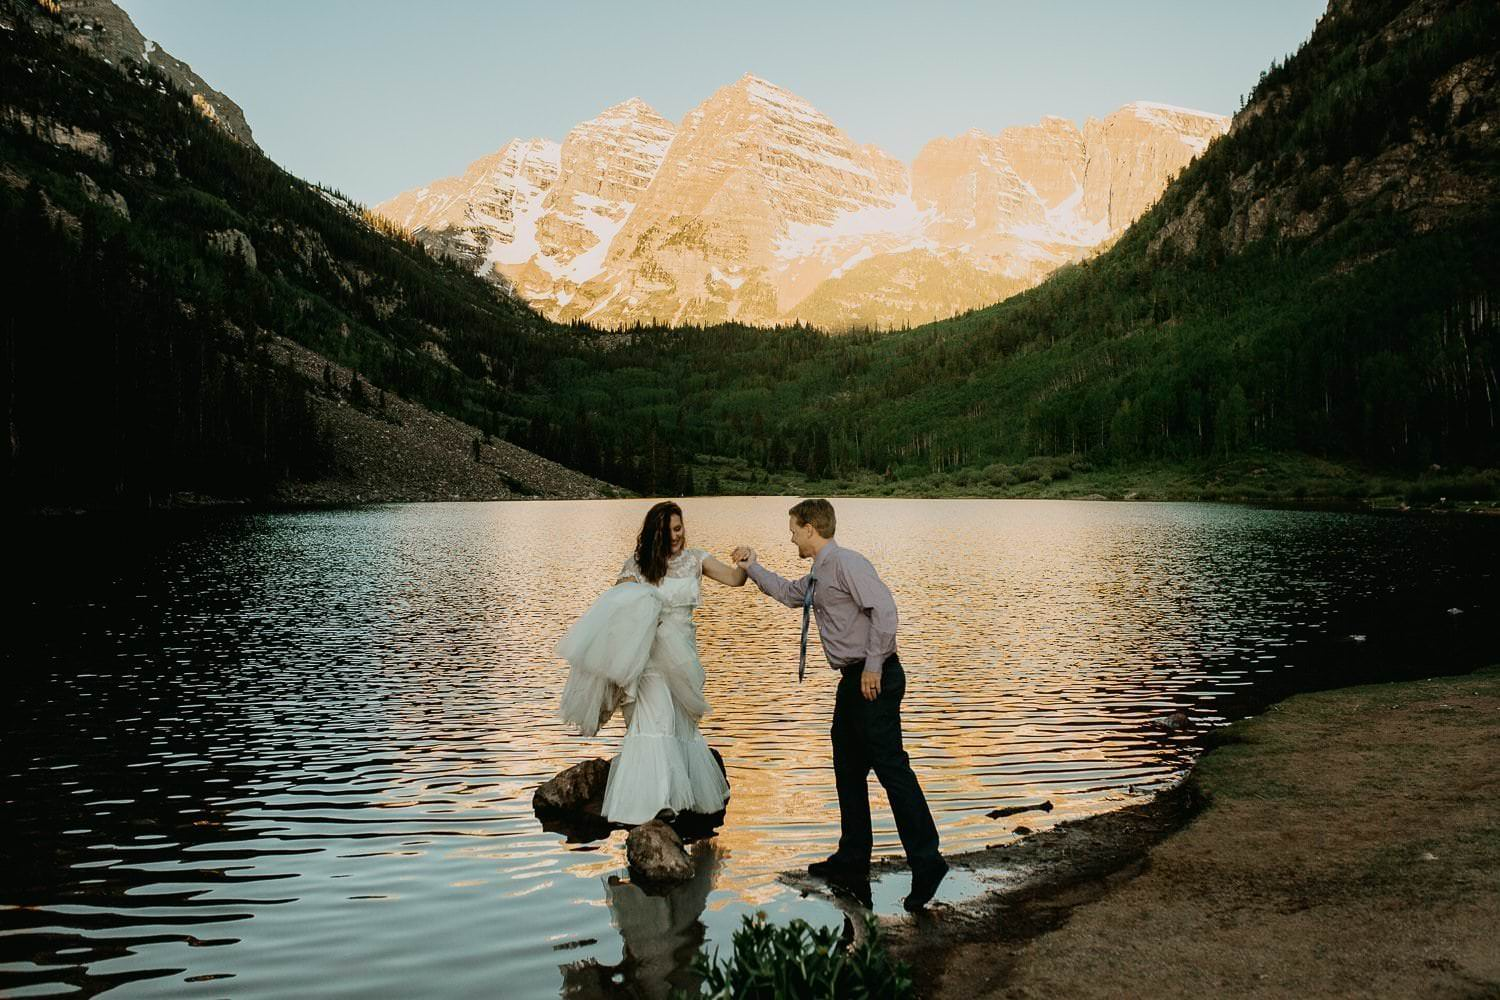 MAROON BELLS HIKING ADVENTURES|ASPEN COLORADO MOUNTAIN ADVENTURES|INDEPENDENCE PASS HIKING ADVENTURES|ASPEN SNOWMASS WHITE RIVER NATIONAL FOREST ADVENTURES|ADVENTURE ELOPEMENTS|HIKING ADVENTURE|AMY+ IAN|INTIMATE WEDDING + ADVENTUROUS ELOPEMENT PHOTOGRAPHER